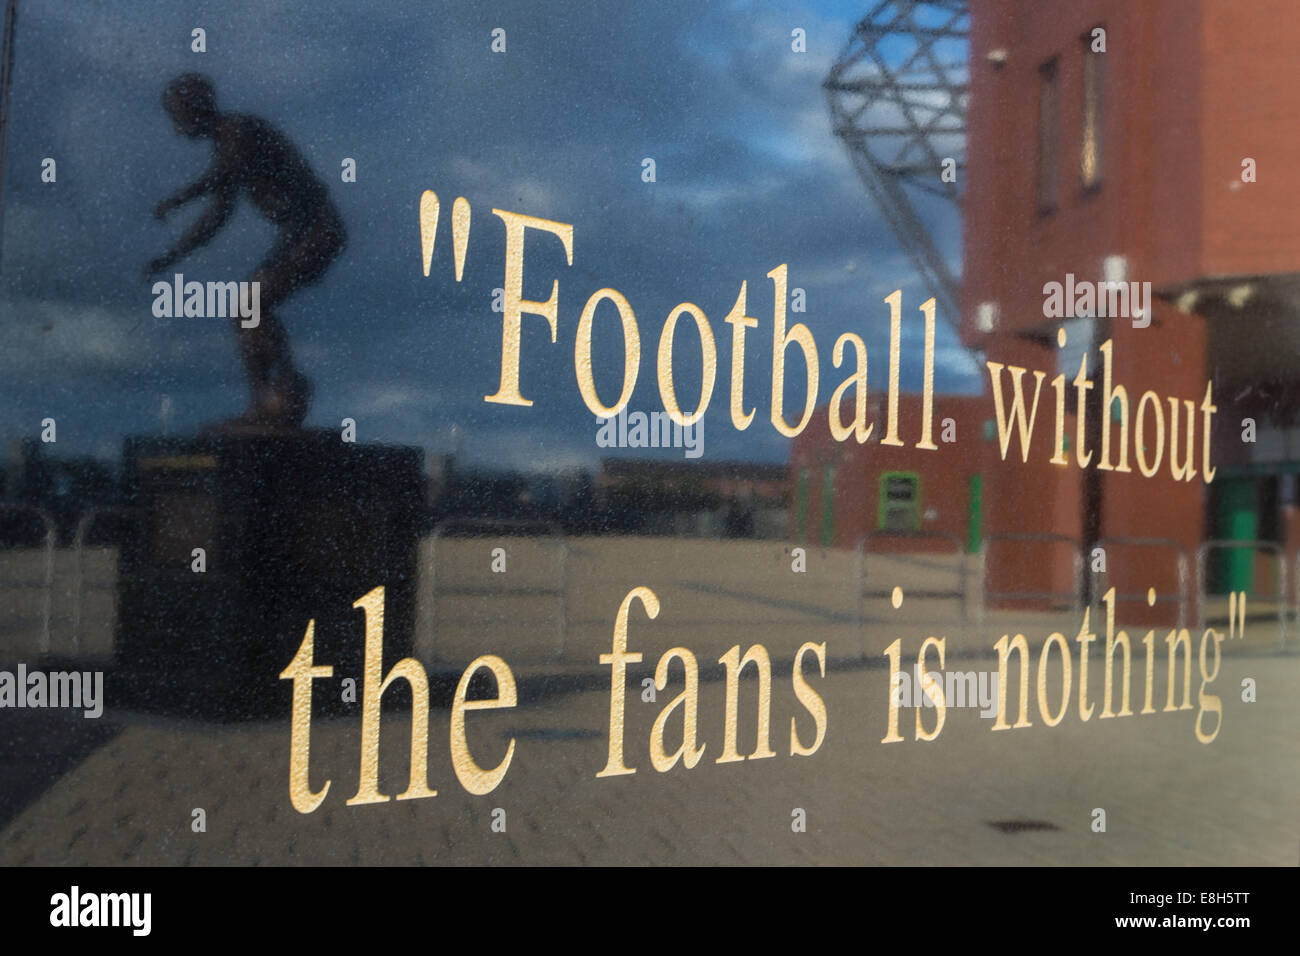 Quote from former manager Jock Stein on a statue's plinth, with reflection of statue of former player and legend - Stock Image